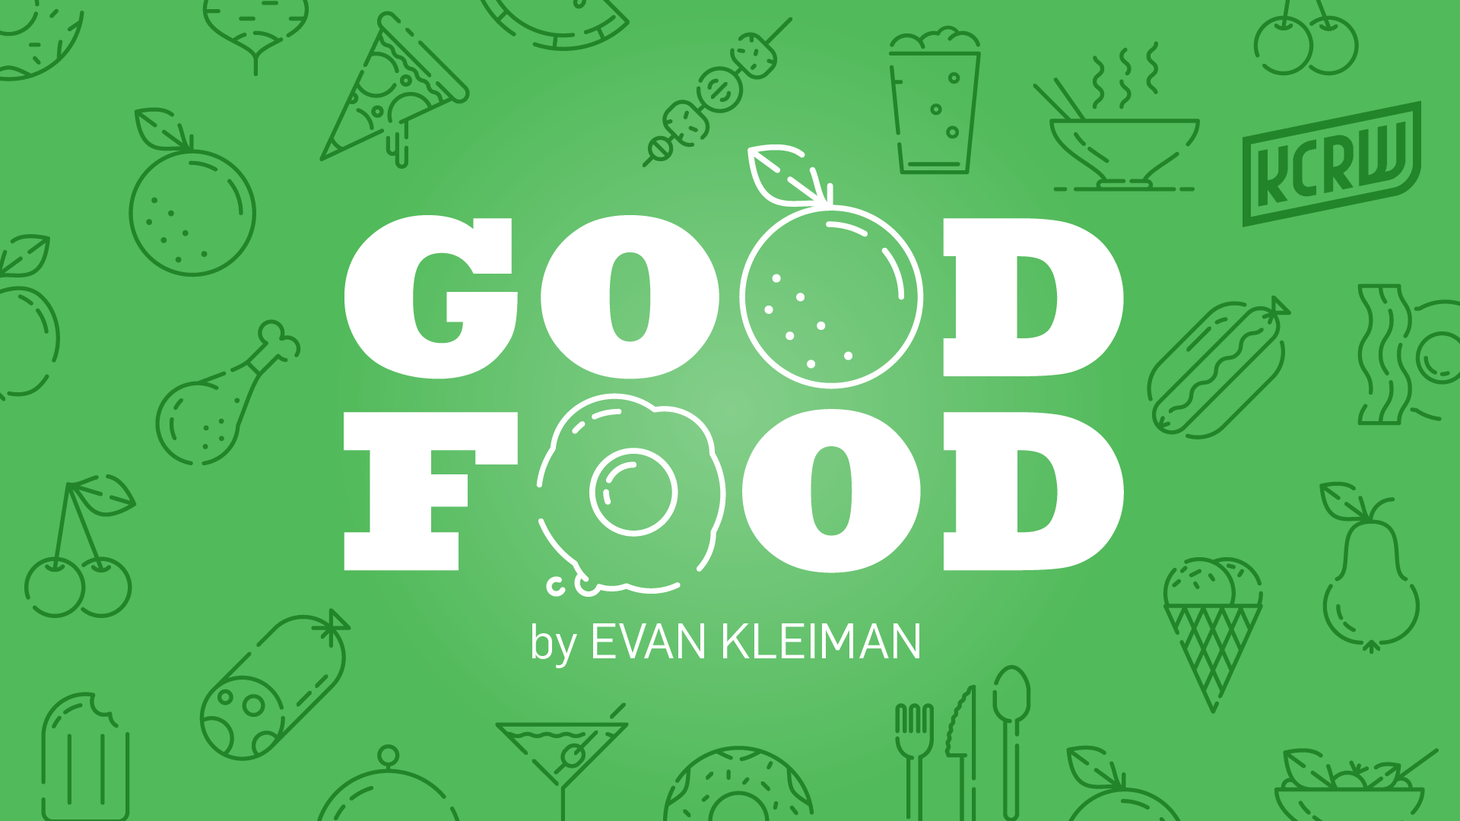 In this Best of Good Foods encore presentation, we hear from Andrew Friedman, who shares some chef' tales of near disaster in the kitchen. Pastry chef Cindy Mushet reminds us that the best cakes don't grow in boxes. NASA food scientist Michele Perchonok affirms that space-flight food has improved way beyond Tang.  Freelance writer David Ramsey regales us with tales of chicken so hot that it has us in tears, and we dish the dirt with the husband-wife team of Peter Menzel and Faith d'Aluisio about bug-eating cultures around the world.